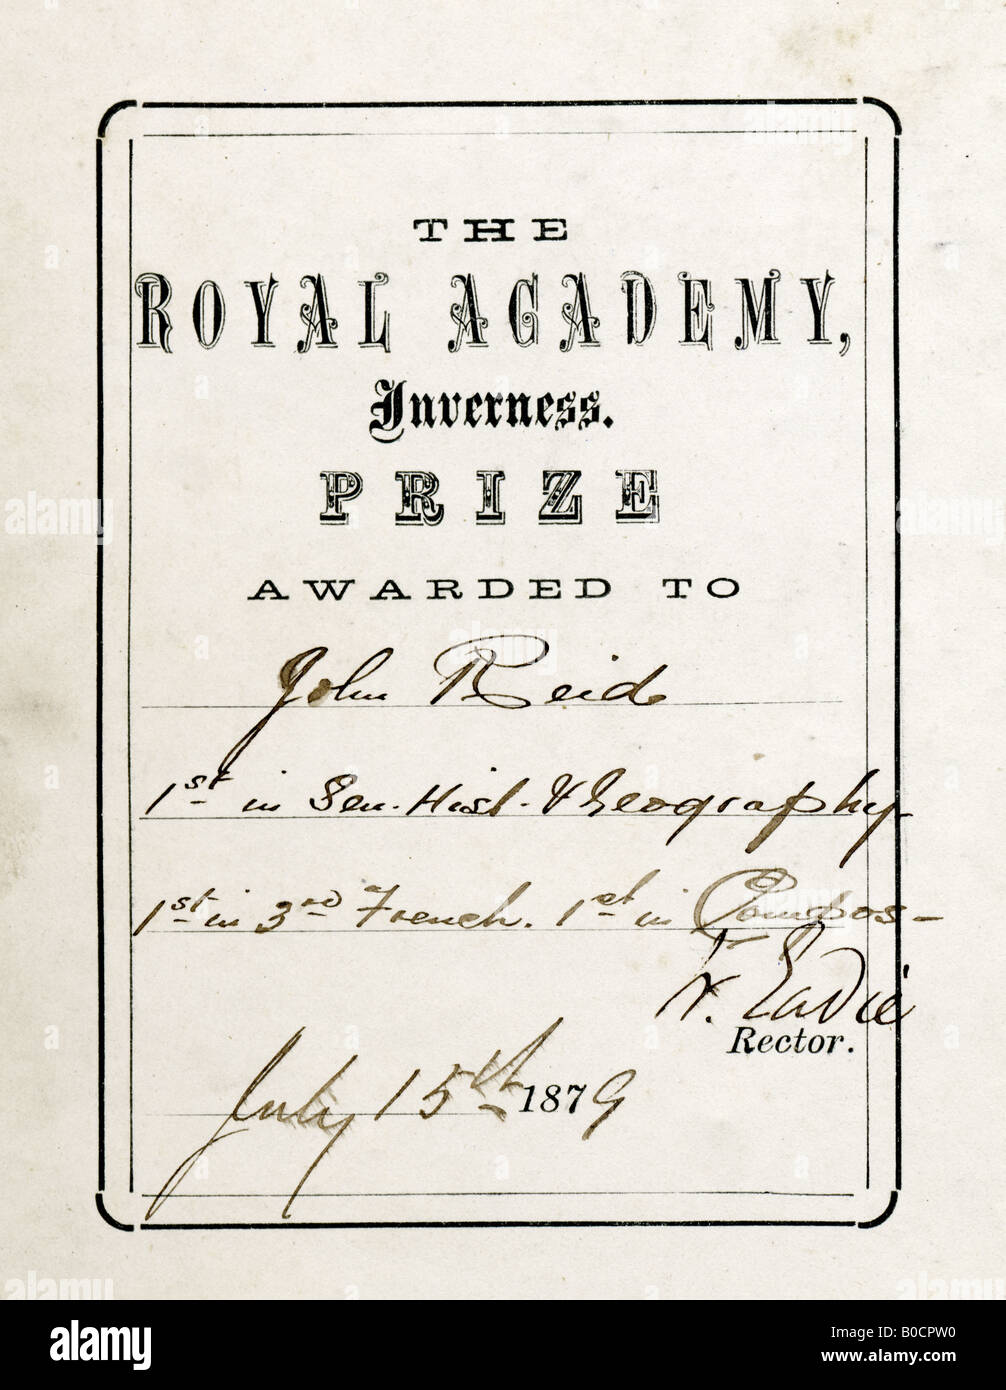 Victorian School Prize book insert Royal Academy of Inverness Scotland 1879 - Stock Image